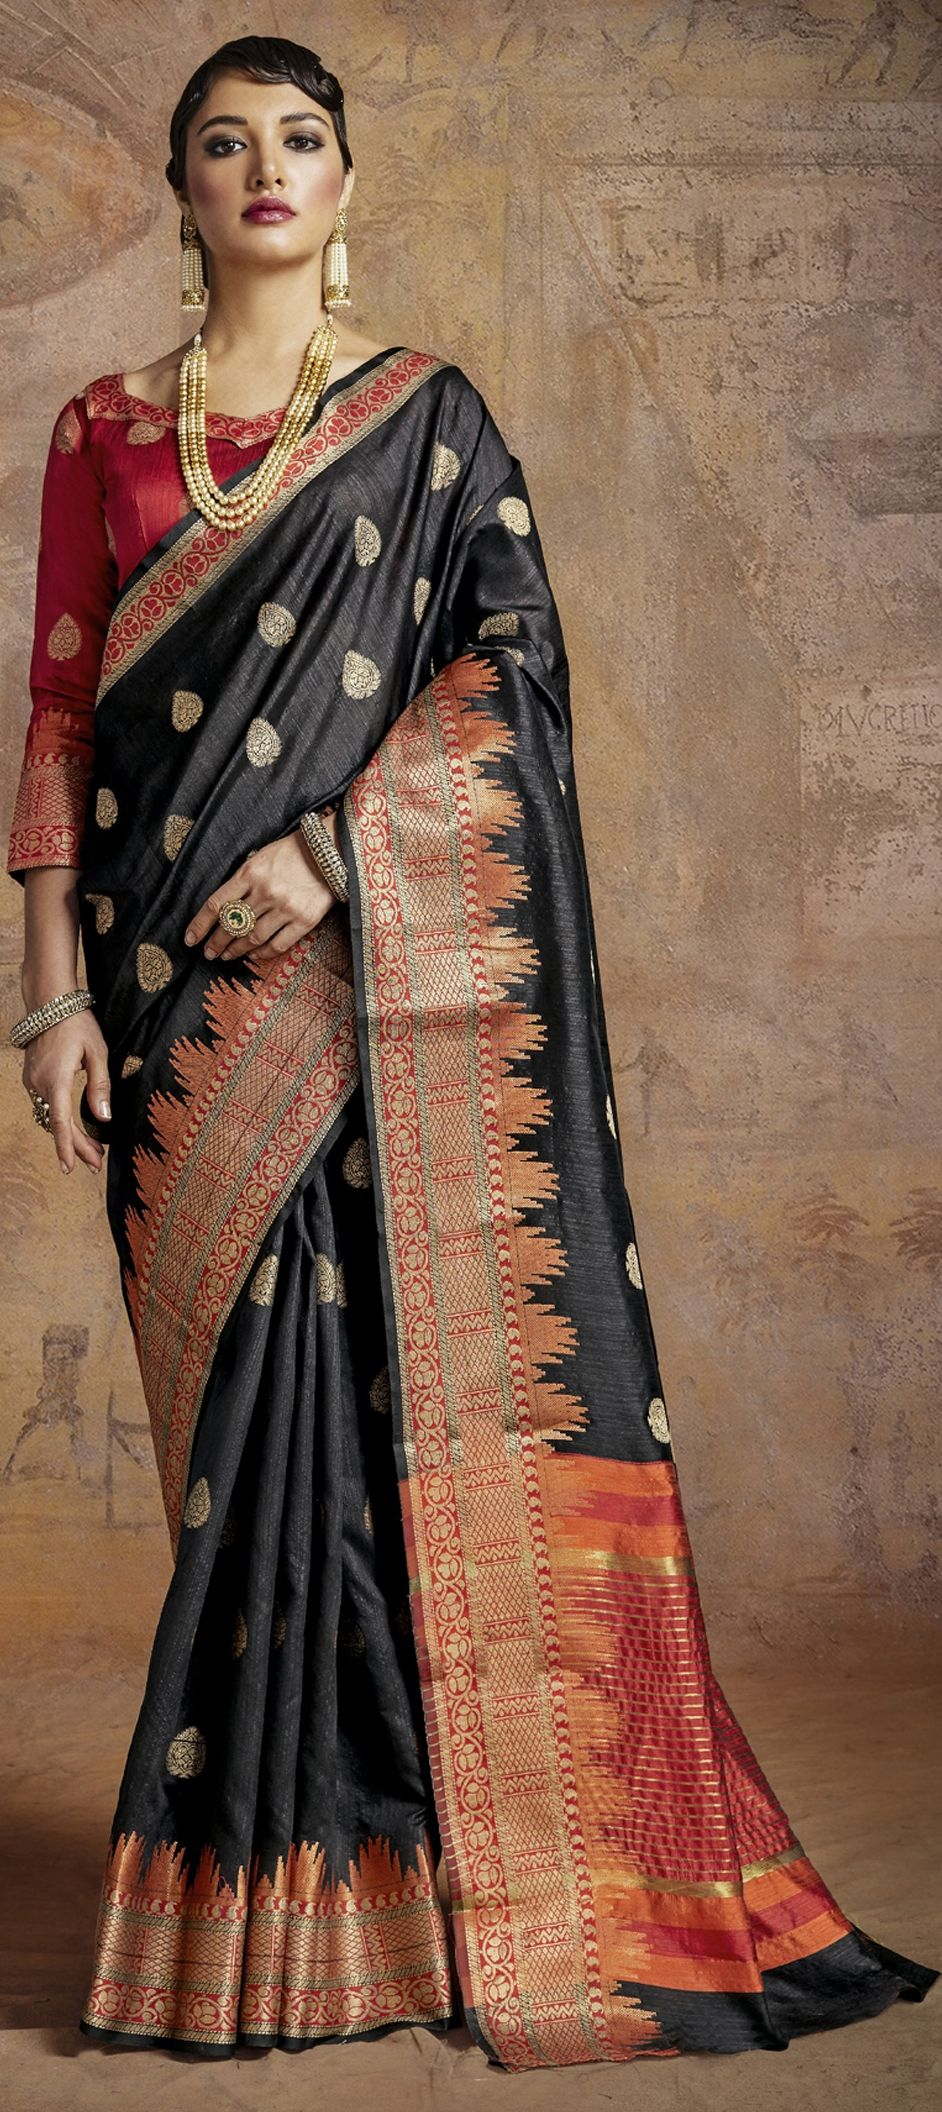 Go get styled in HANDLOOM SAREES